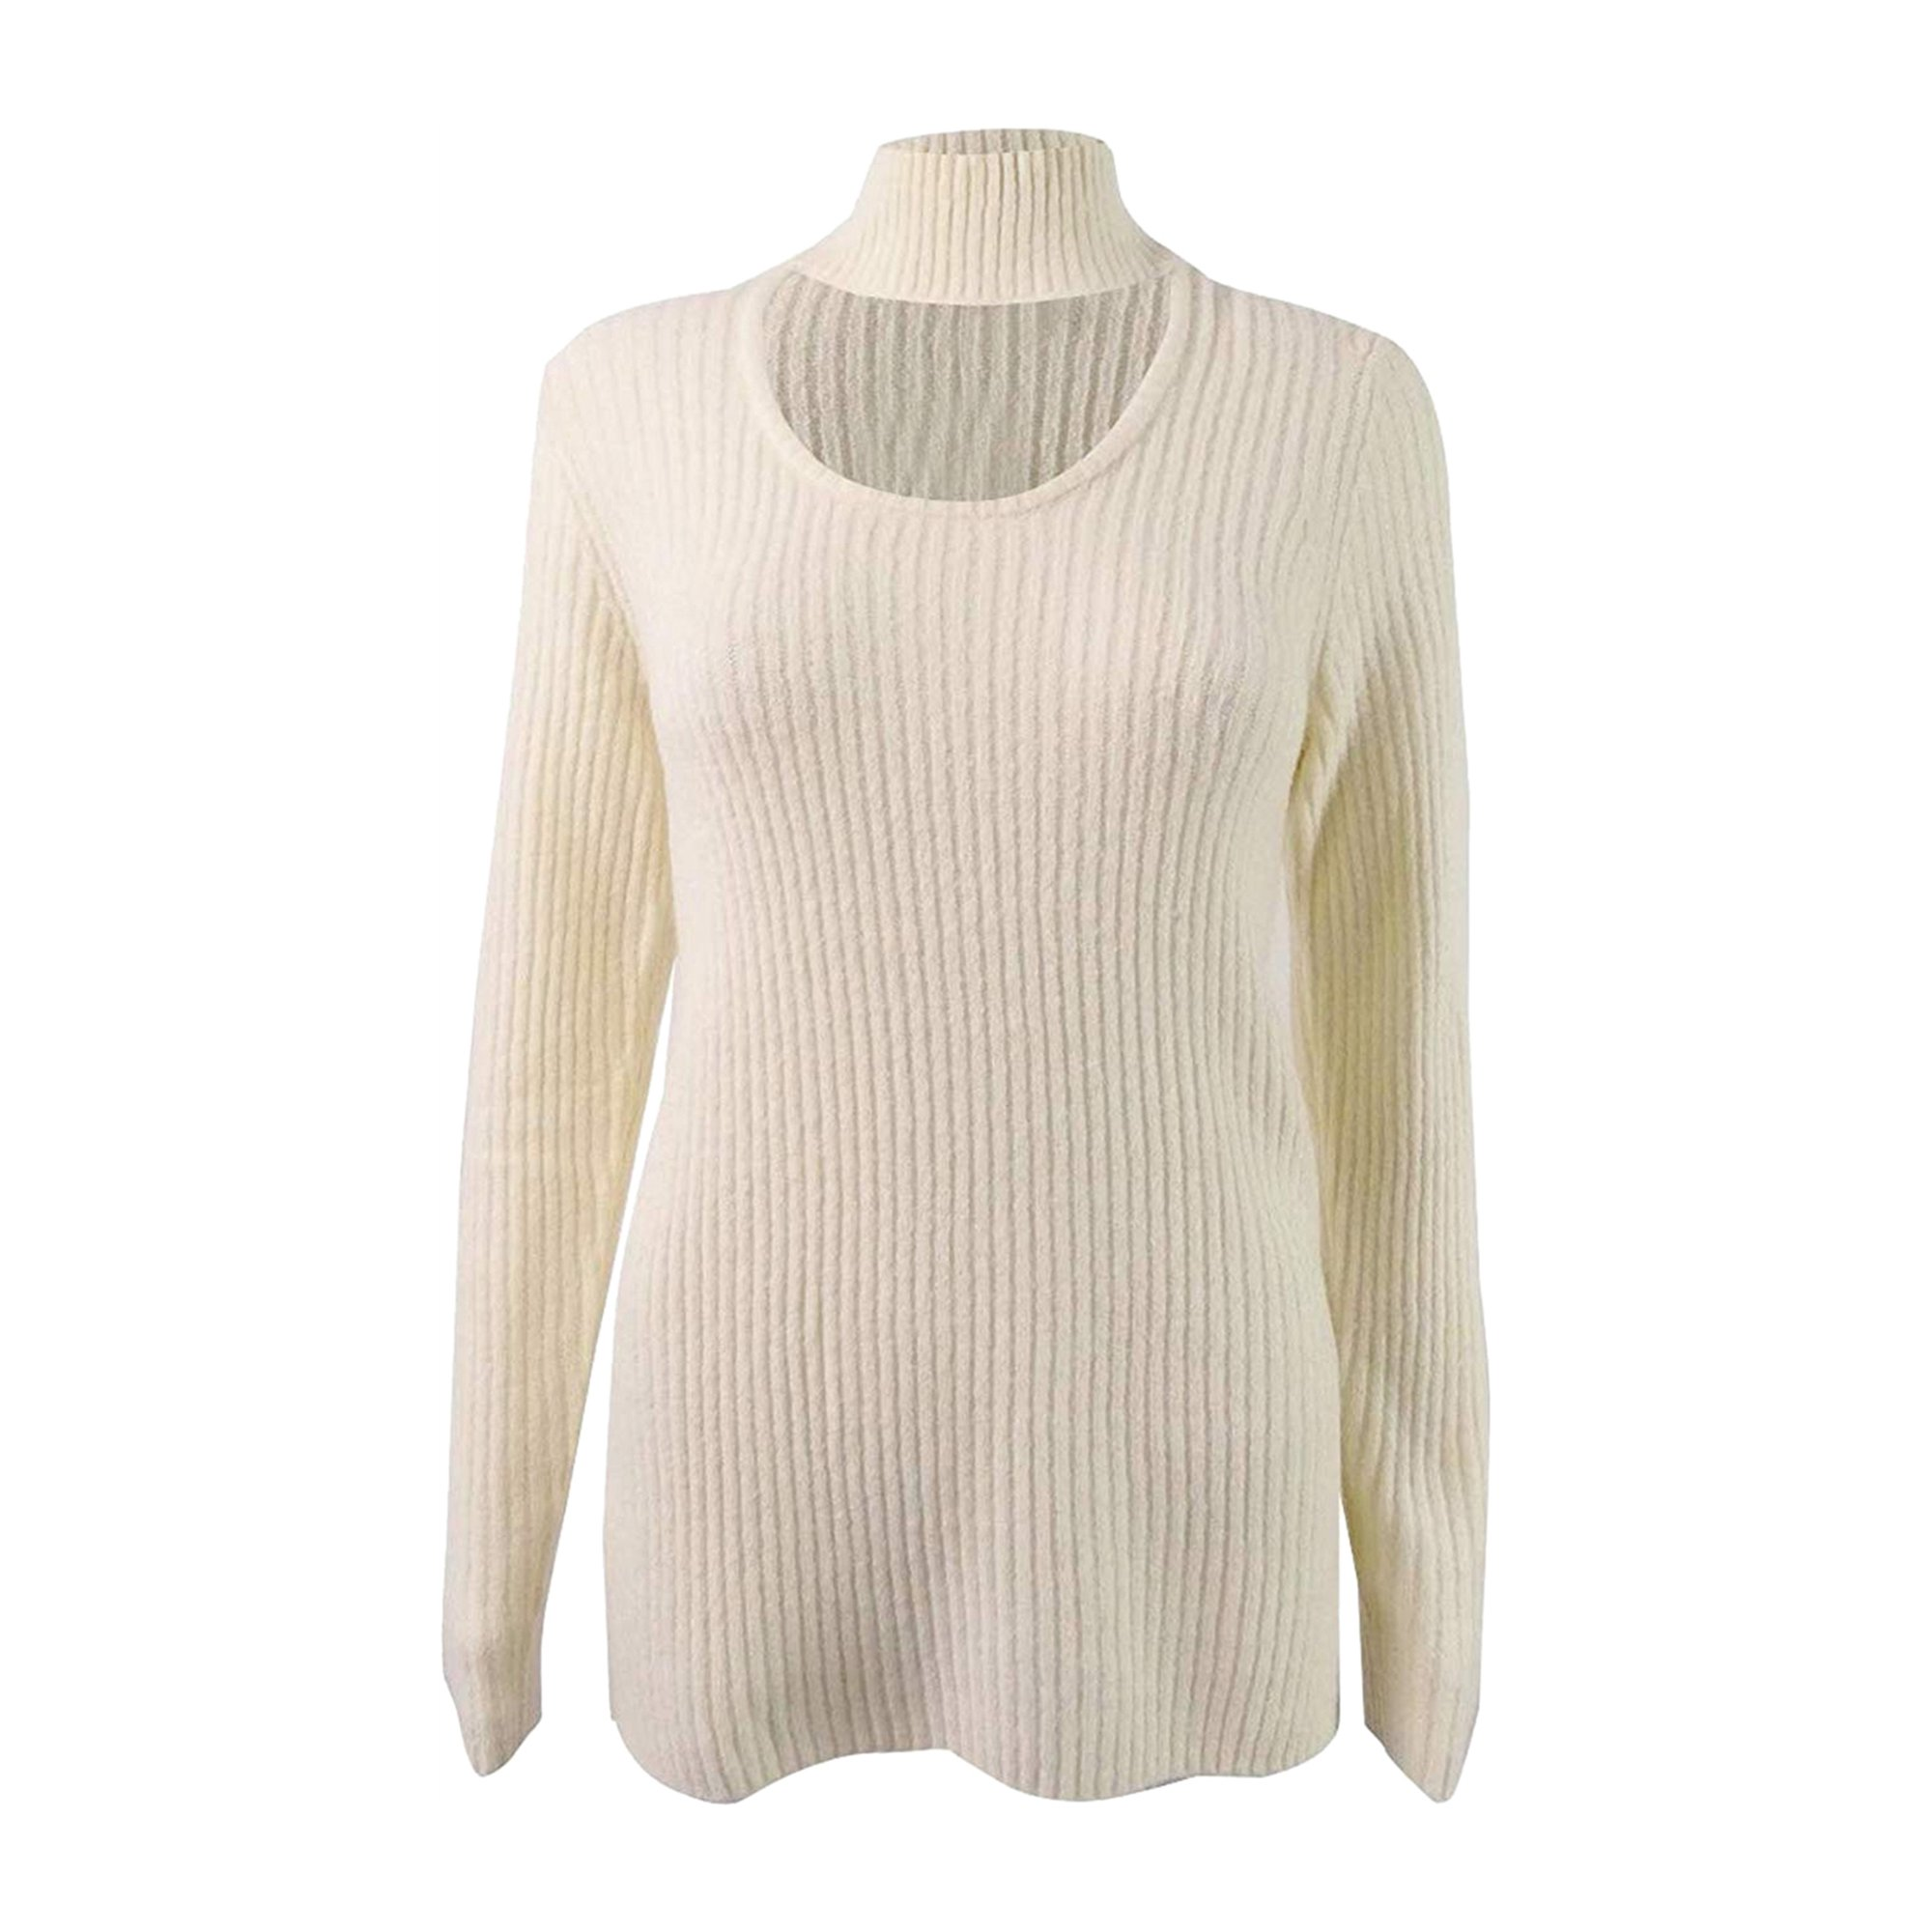 Kensie Womens Ribbed Knit Choker Pullover Sweater tsk S